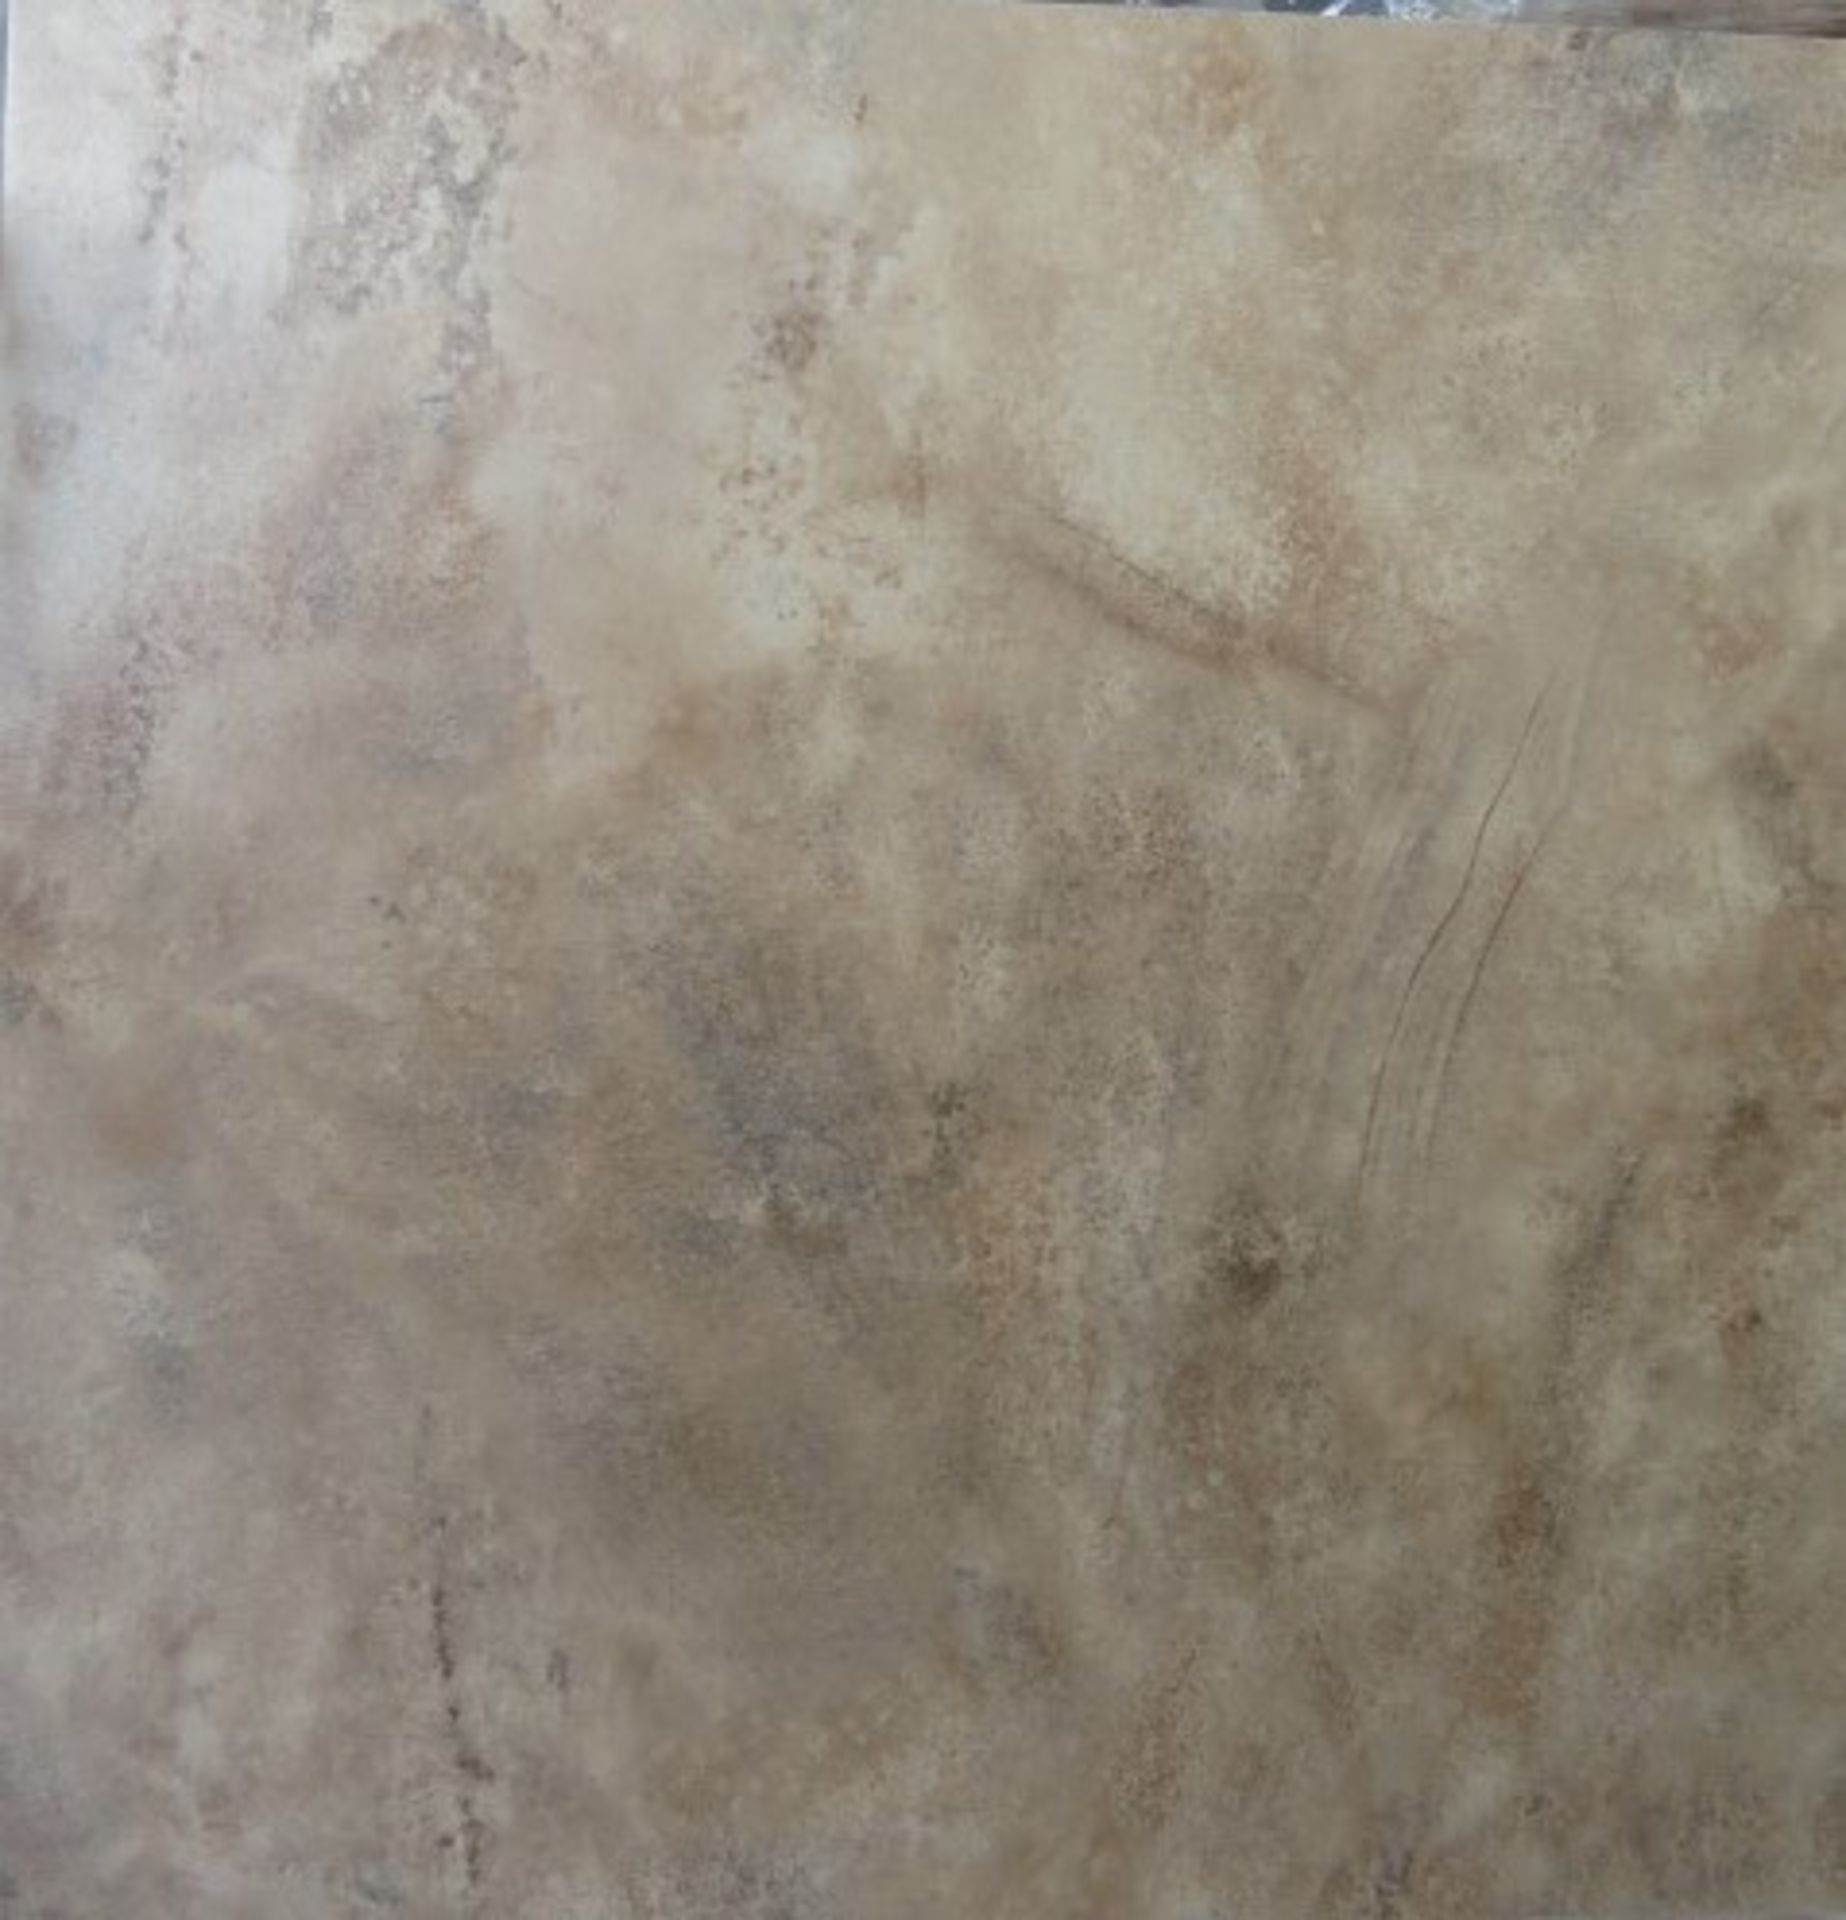 New 6 Square Meters Of Michigan Noce Matte Wall And Floor Tiles. 440X440Mm Per Tile, 8Mm Thick. - Image 2 of 3